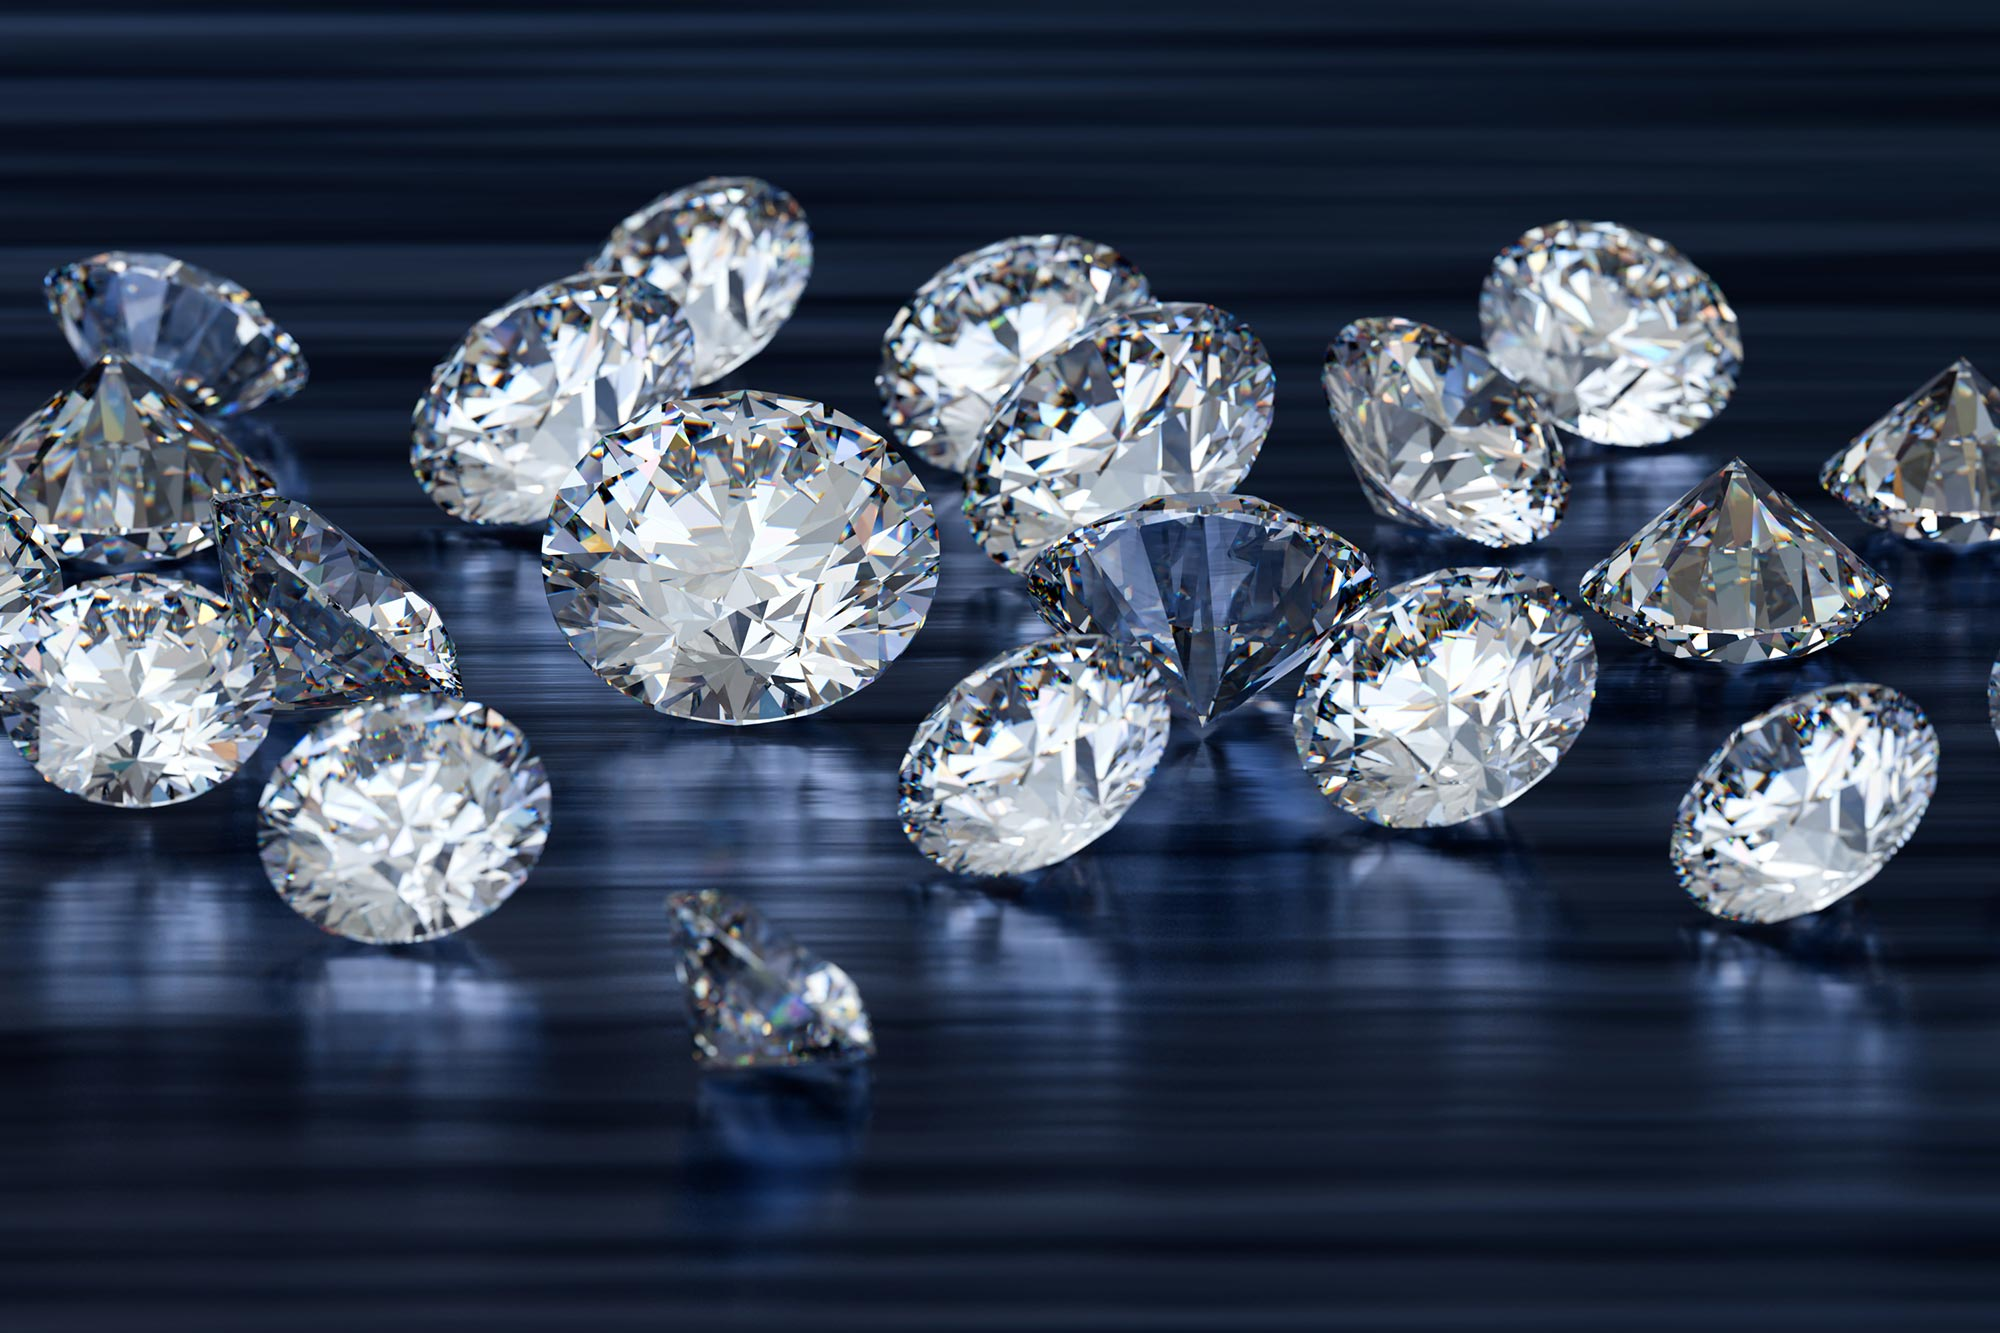 """Modern Alchemy: Stanford Finds Fast, East Way to Make Diamonds – """"Cheating the Thermodynamics"""" - SciTechDaily"""